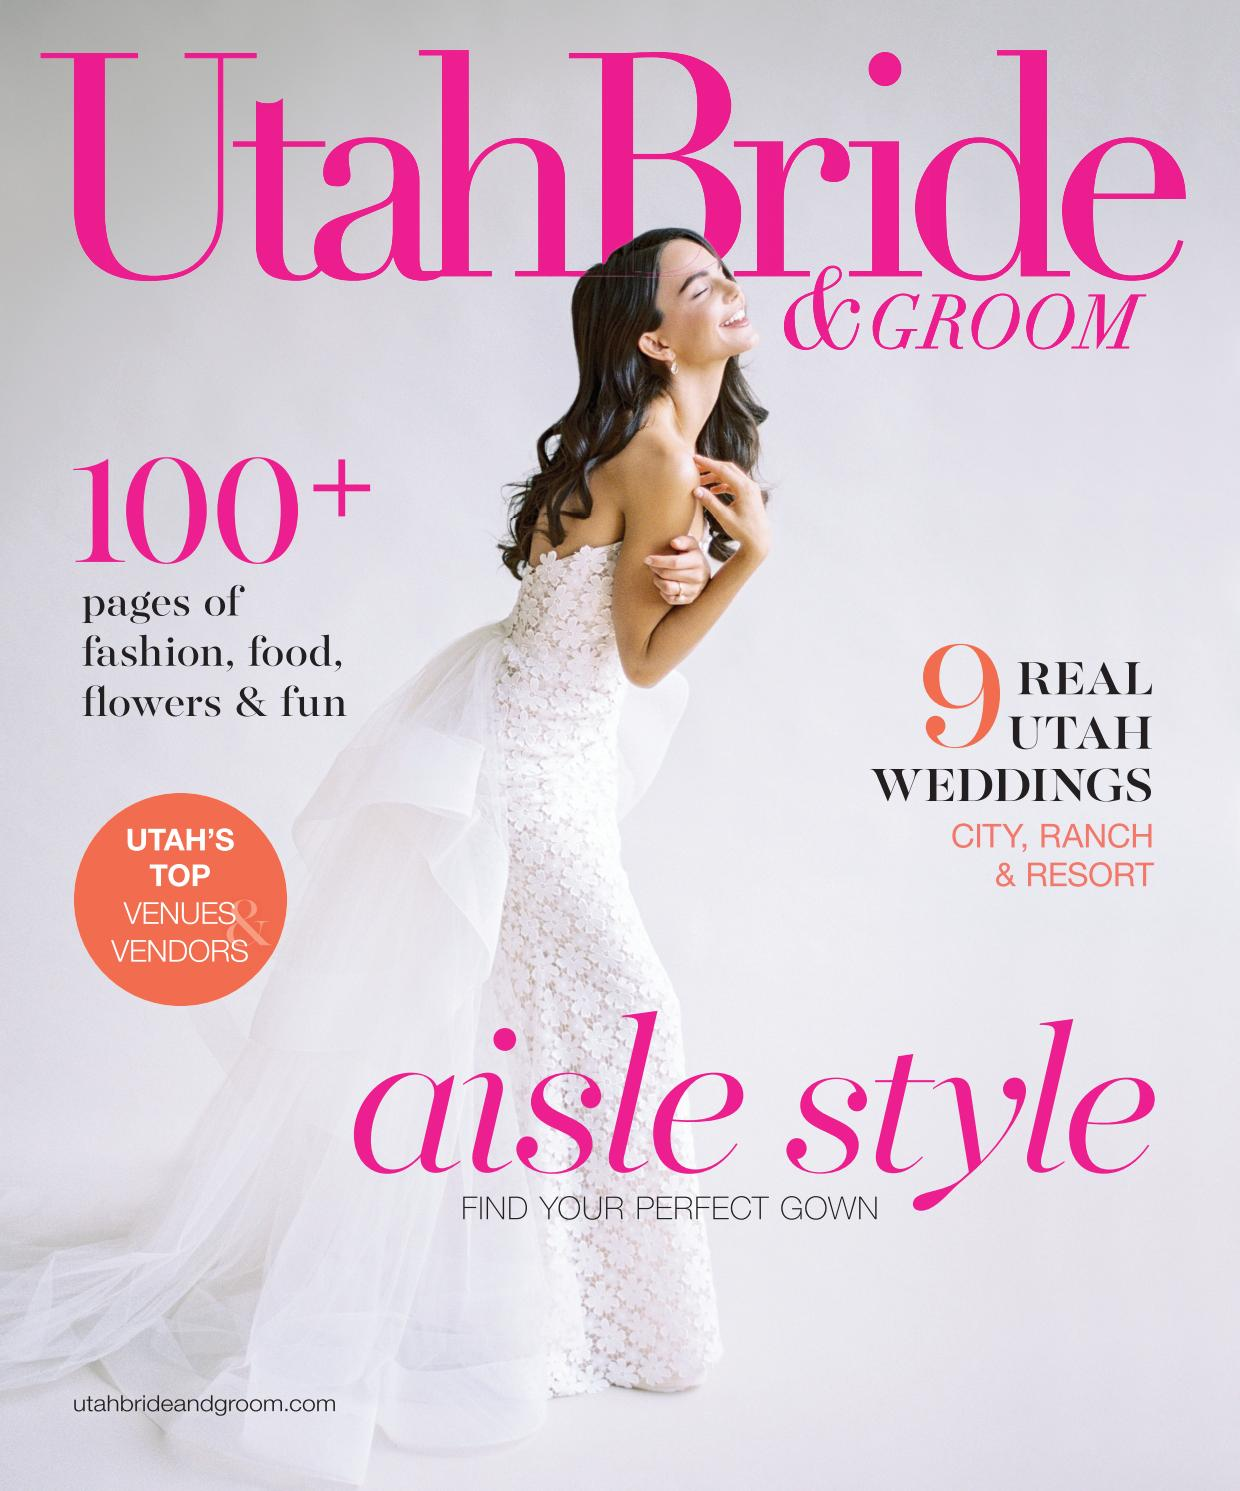 Utah Bride And Groom Spring Winter 2018 By Issuu Popcorn On Pinterest Short Circuit 2 The Princess Movies